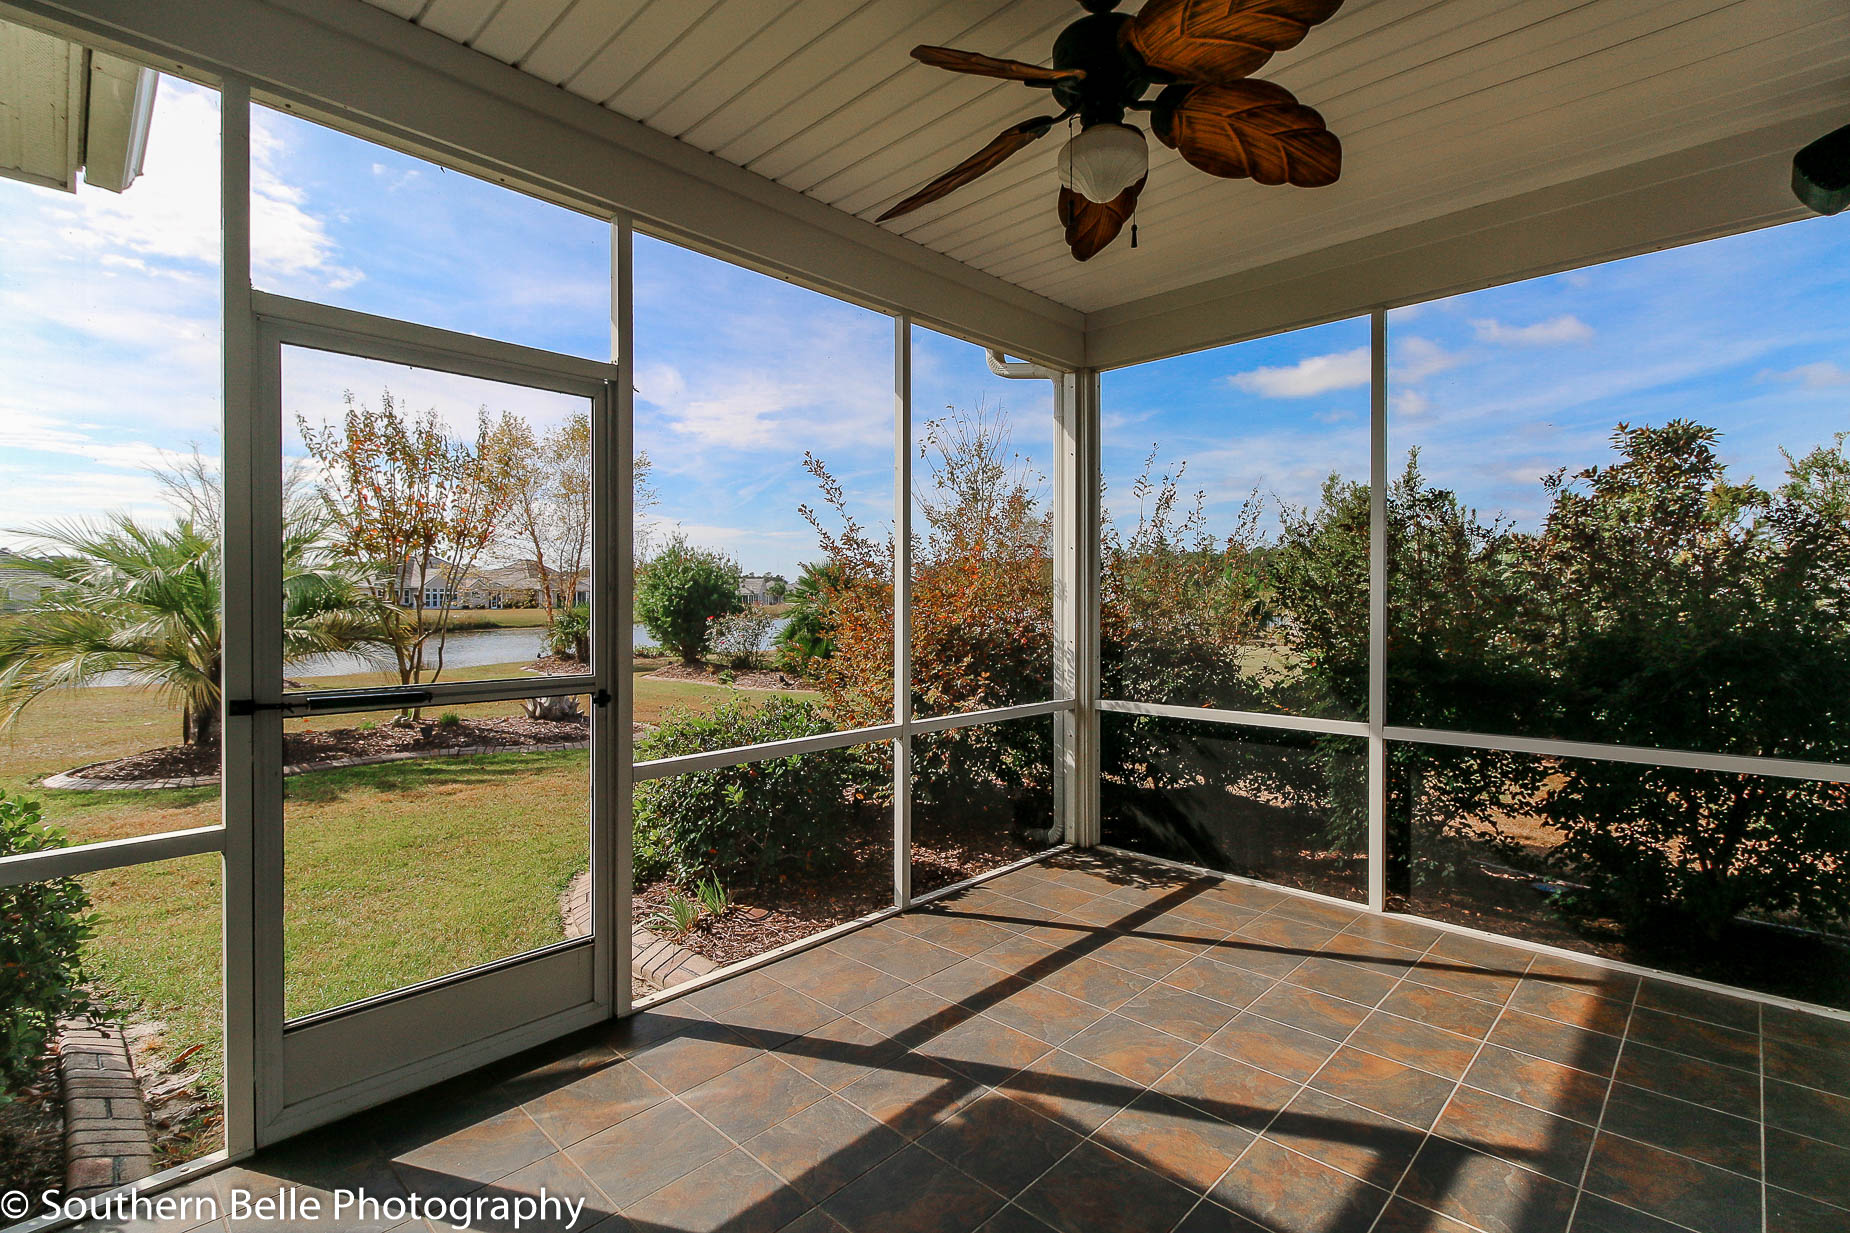 25. Screened Patio exit off Master & Pool Room WM